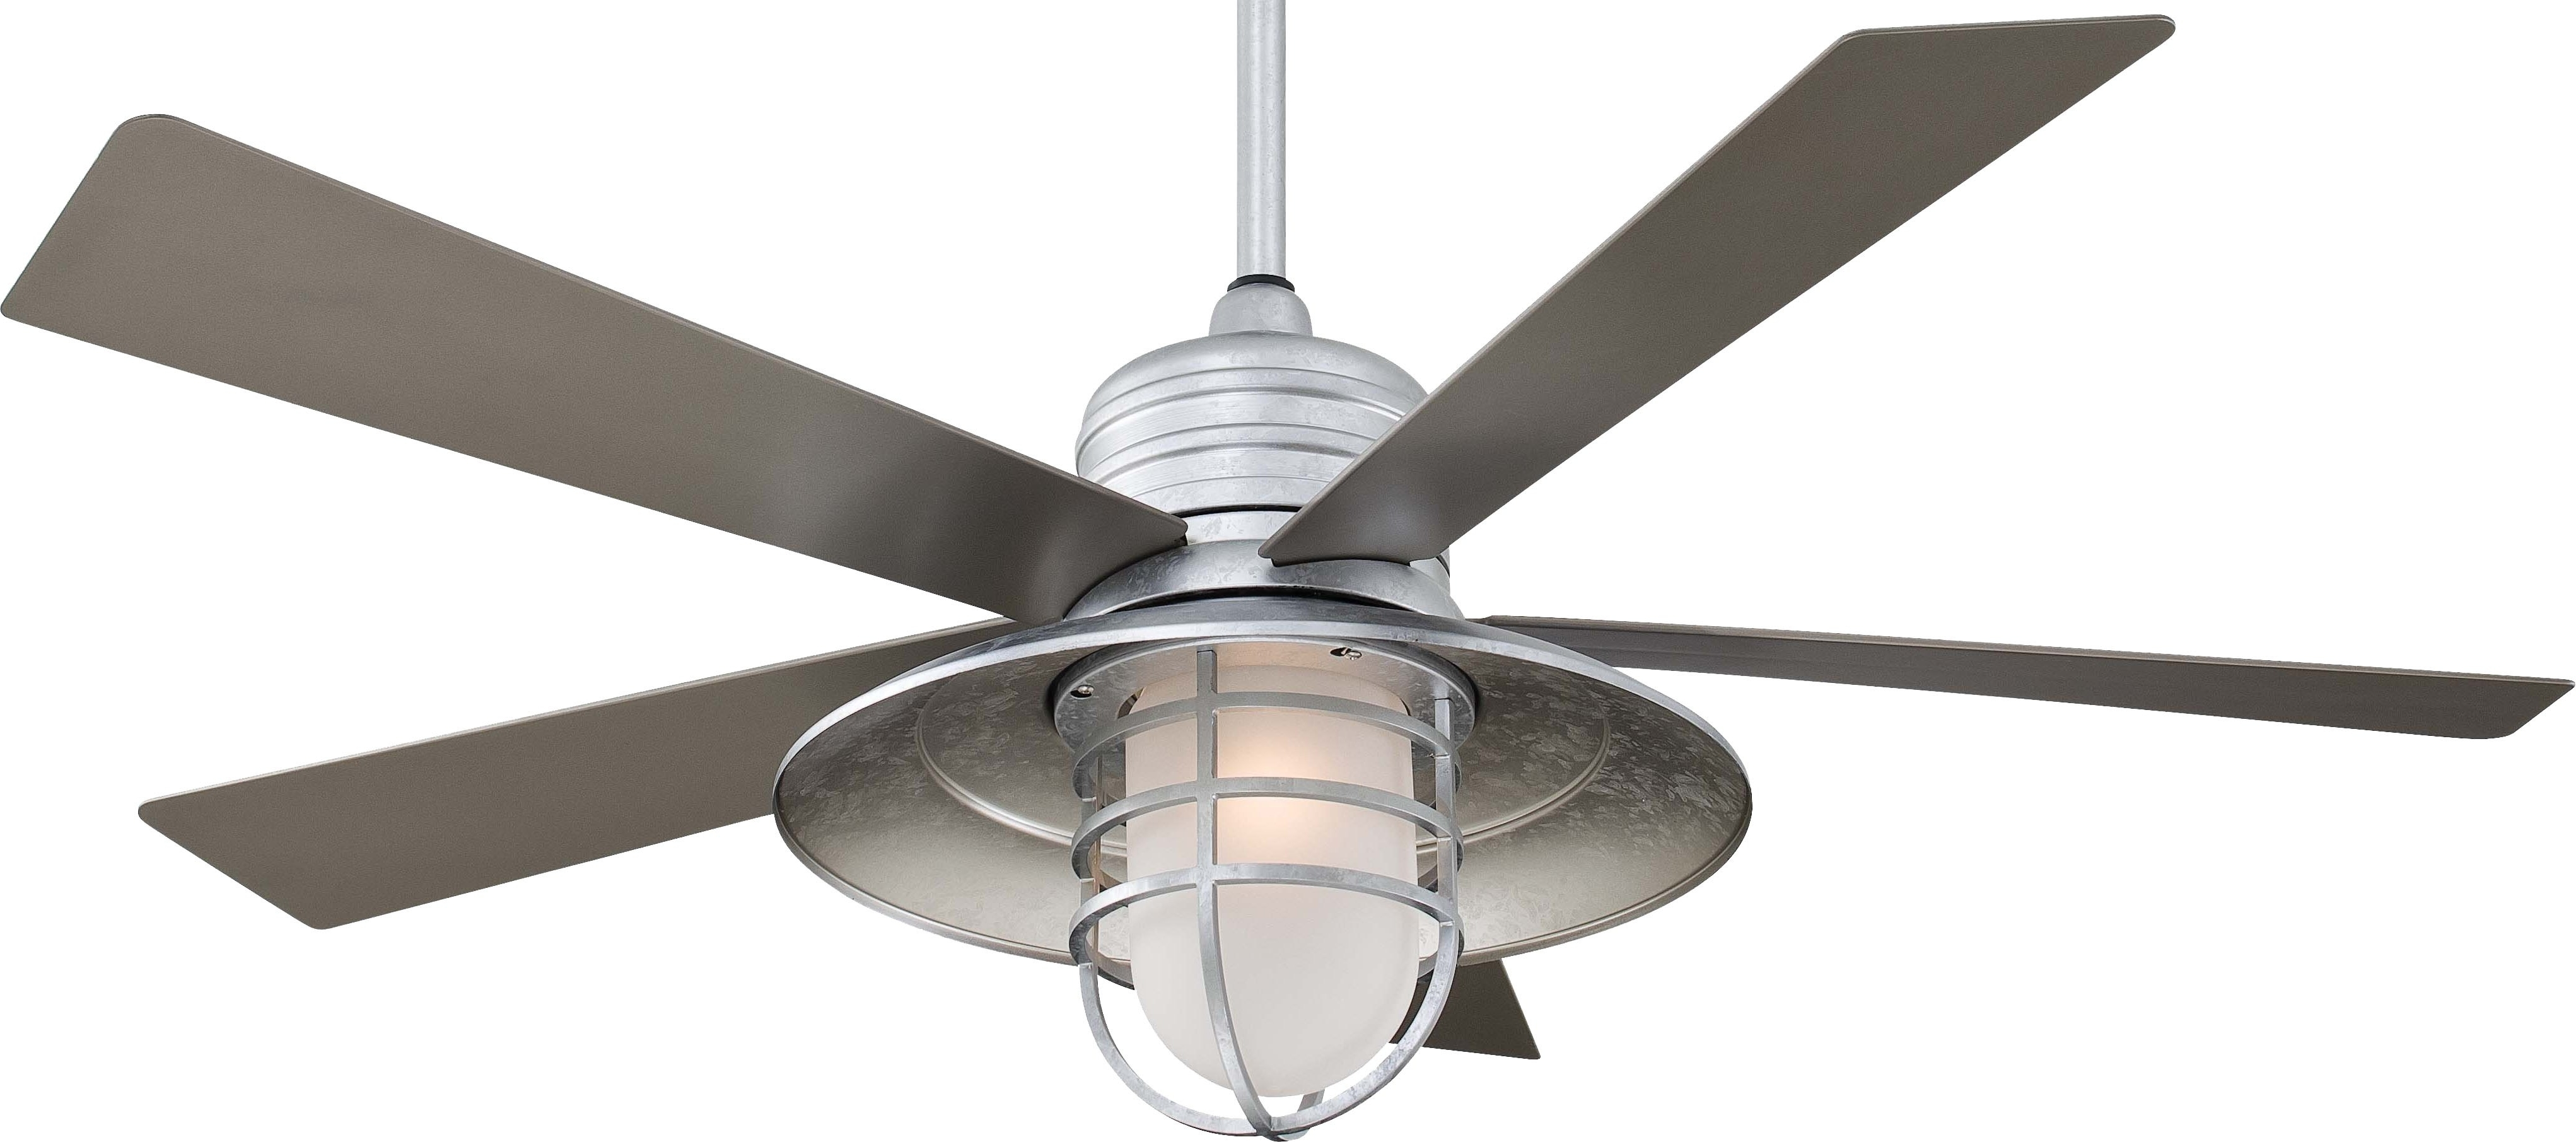 Most Recent Diverting Light Outdoor Ceiling Fans Page Fan City Together With With Regard To Industrial Outdoor Ceiling Fans (View 14 of 20)